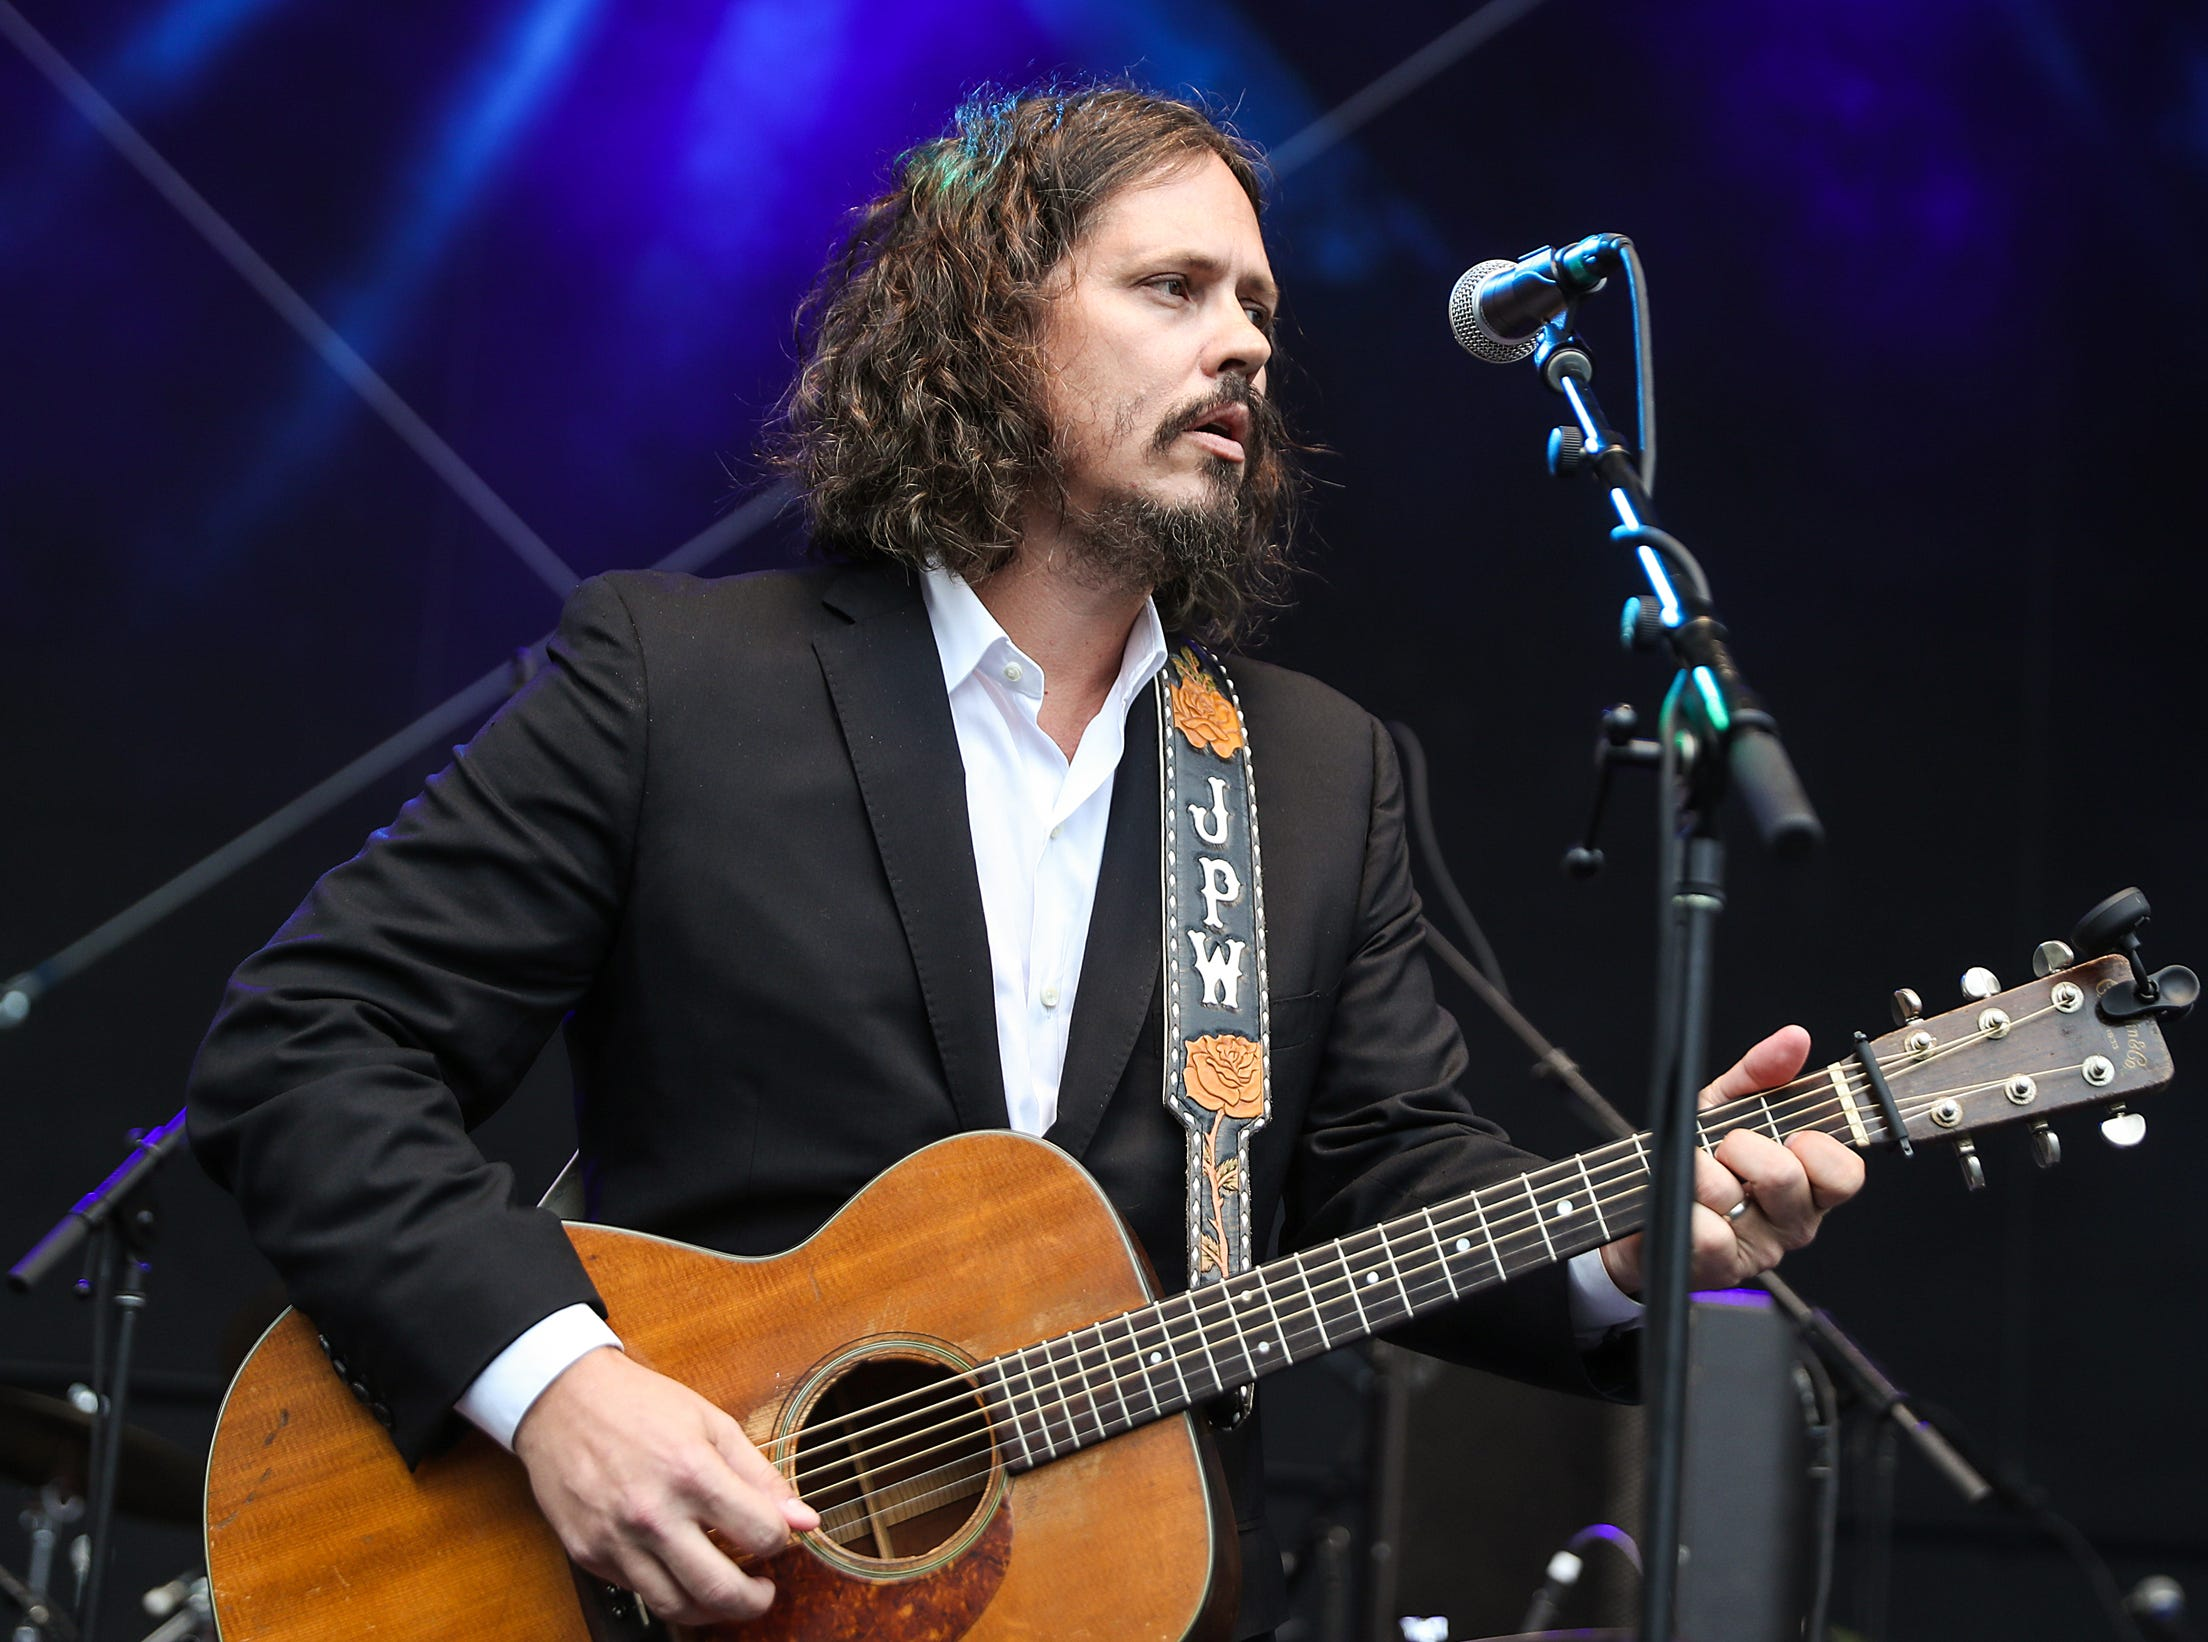 Vocalist and guitarist John Paul White, half of former duo The Civil Wars, at the inaugural Holler on the Hill music festival at Garfield Park in Indianapolis, Saturday, Sept. 22, 2018.